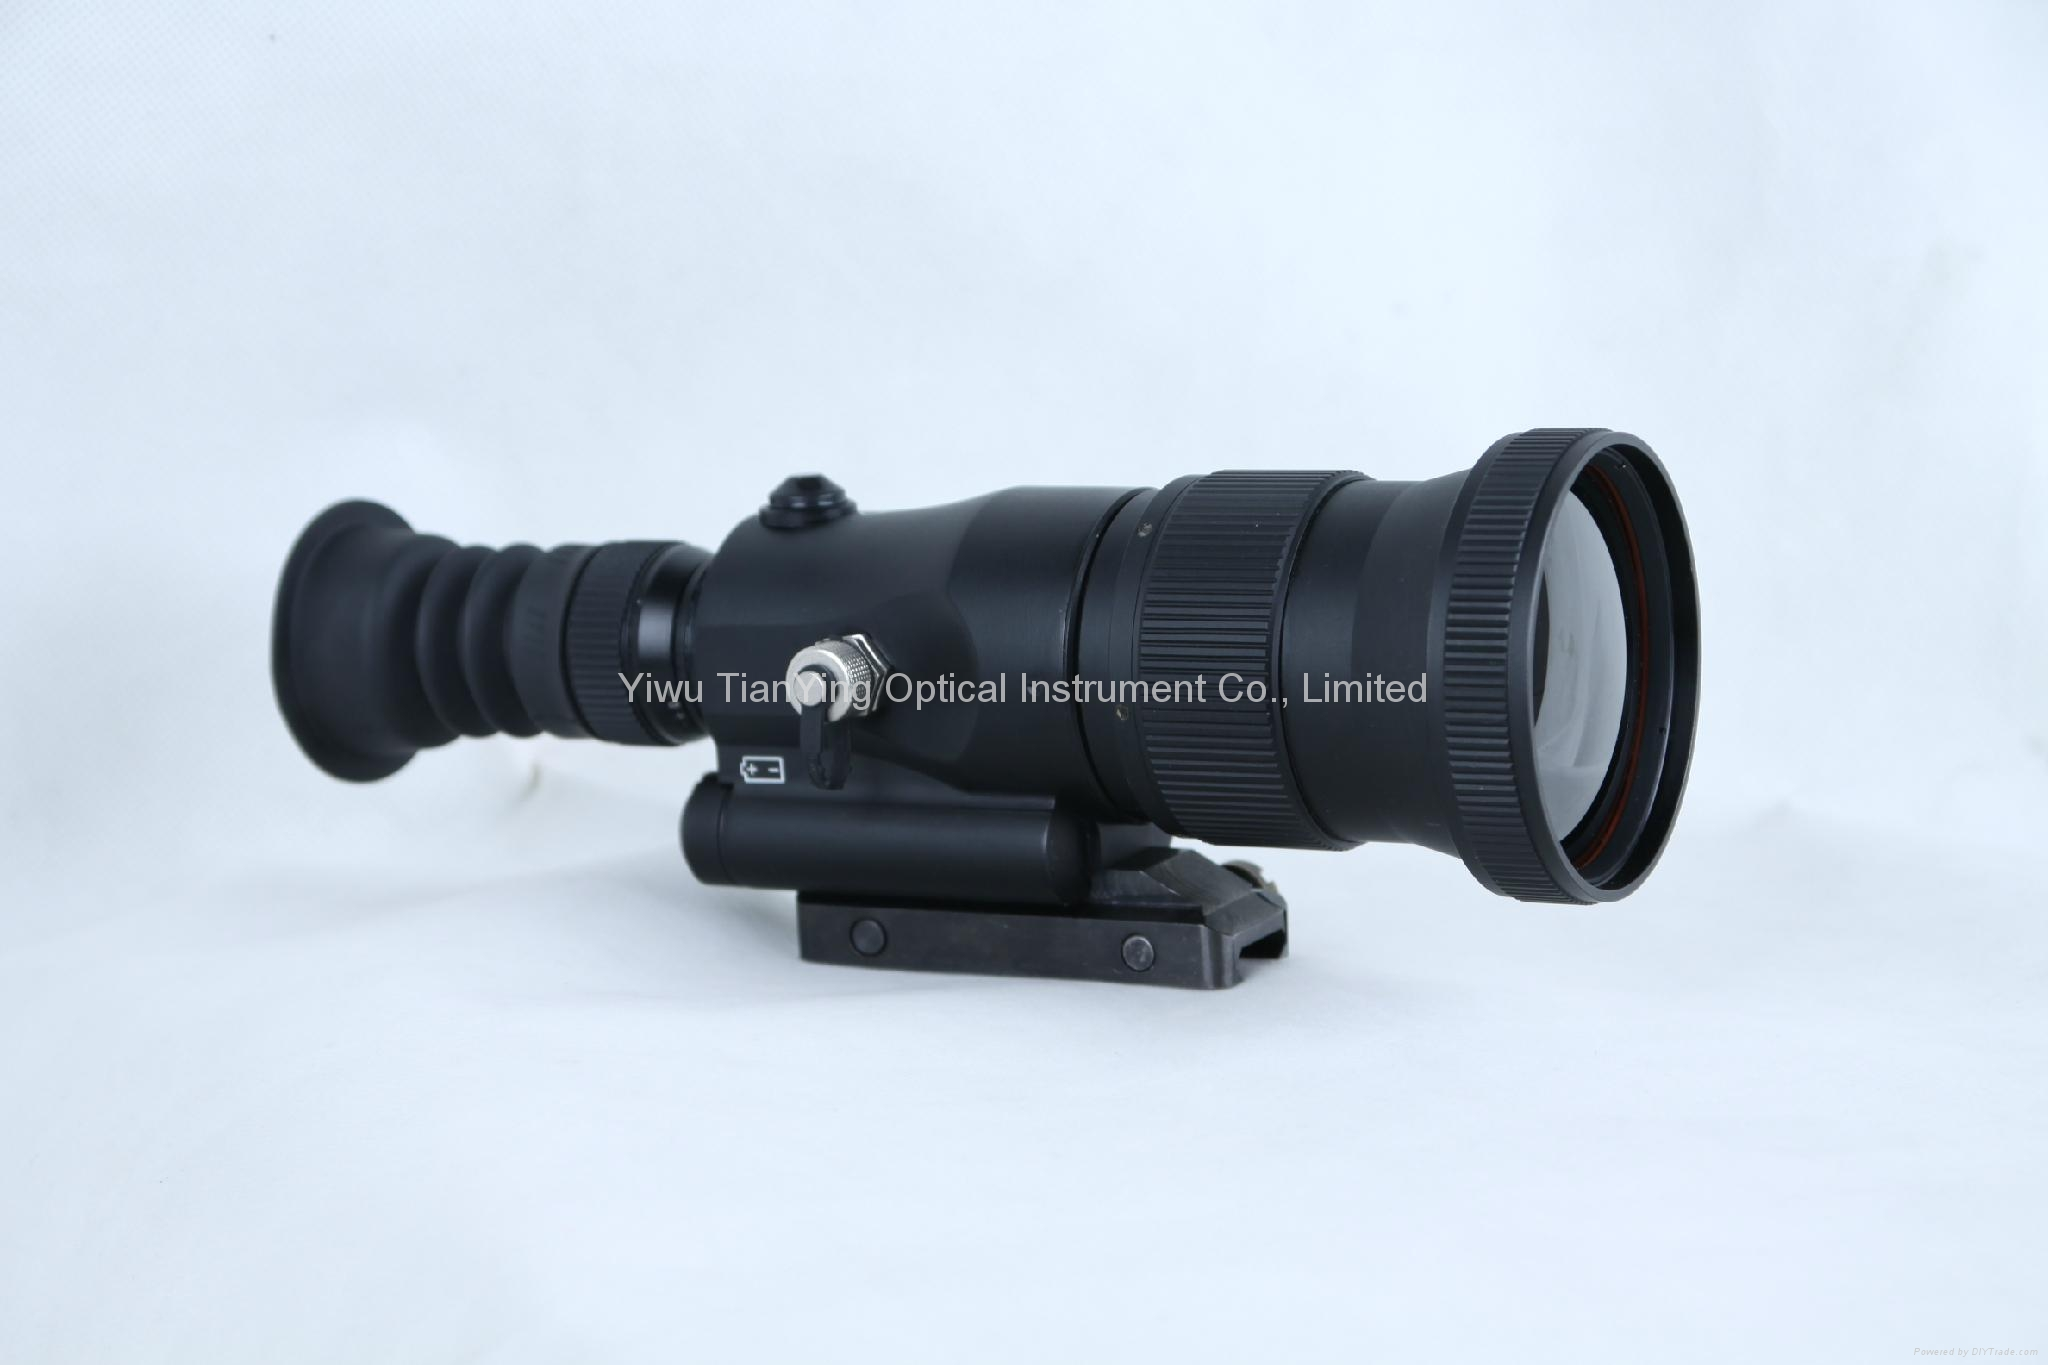 640x512 75mm lens 1000m Sniper Thermal Weapon Sight -3